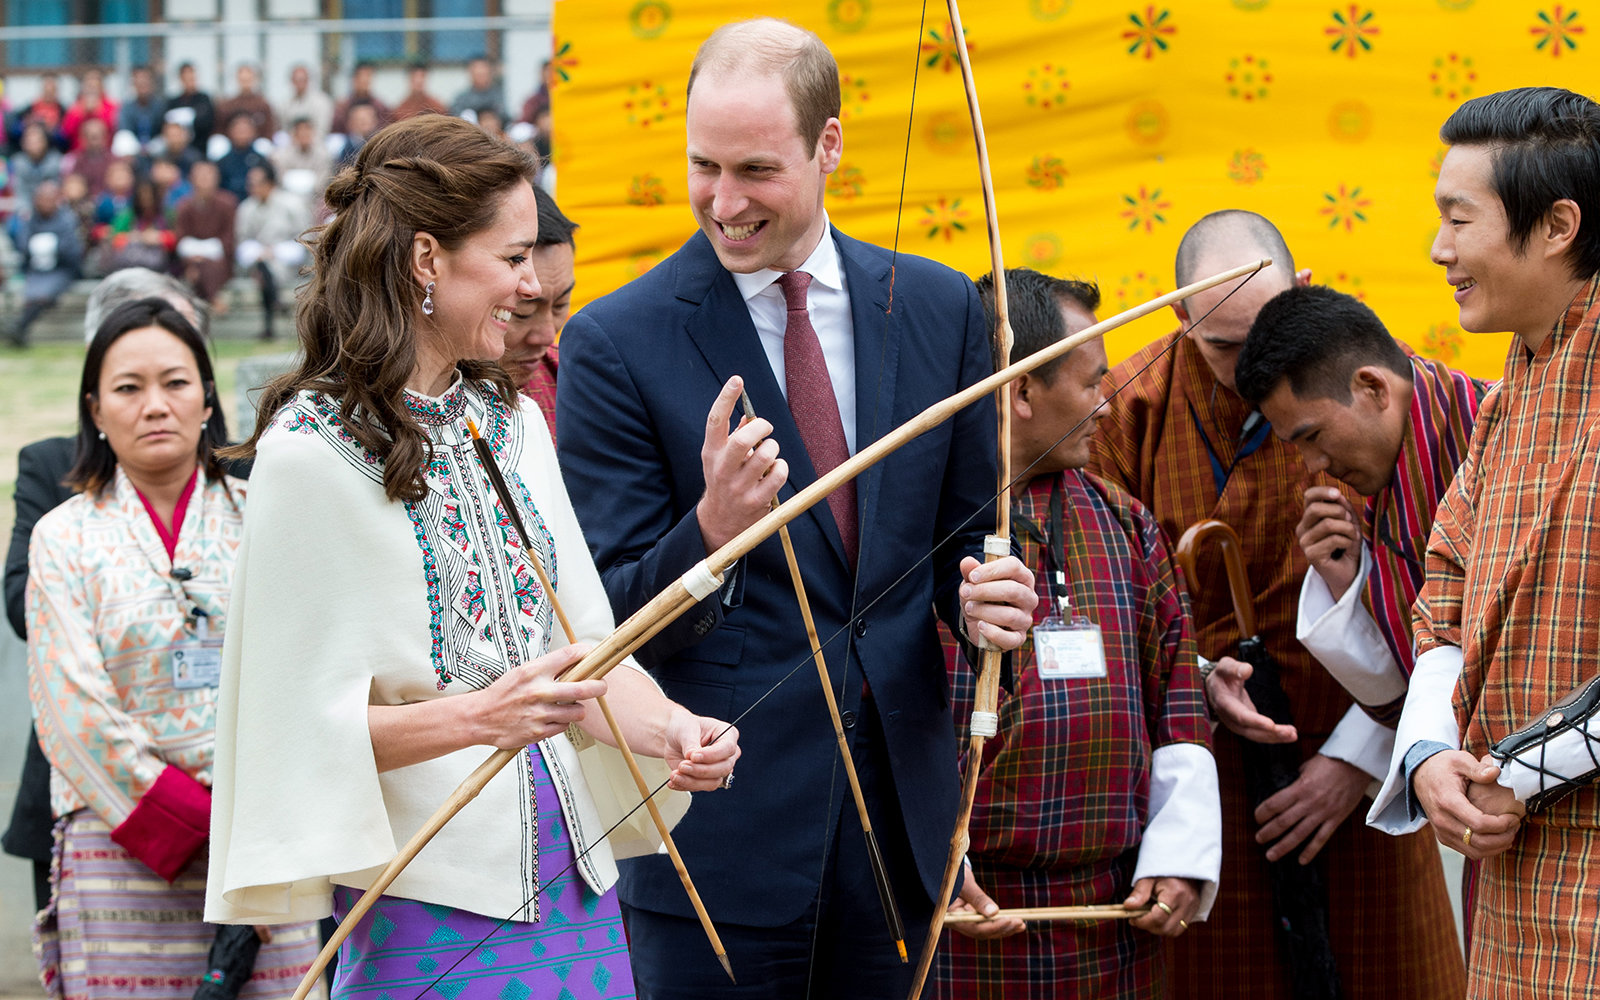 THIMPHU, BHUTAN - APRIL 14:  Catherine, Duchess of Cambridge and Prince William  take part in archery at Thimphu's open-air archery venue on April 14, 2016 in Thimphu, Bhutan.  (Photo by Samir Hussein/Pool/WireImage)